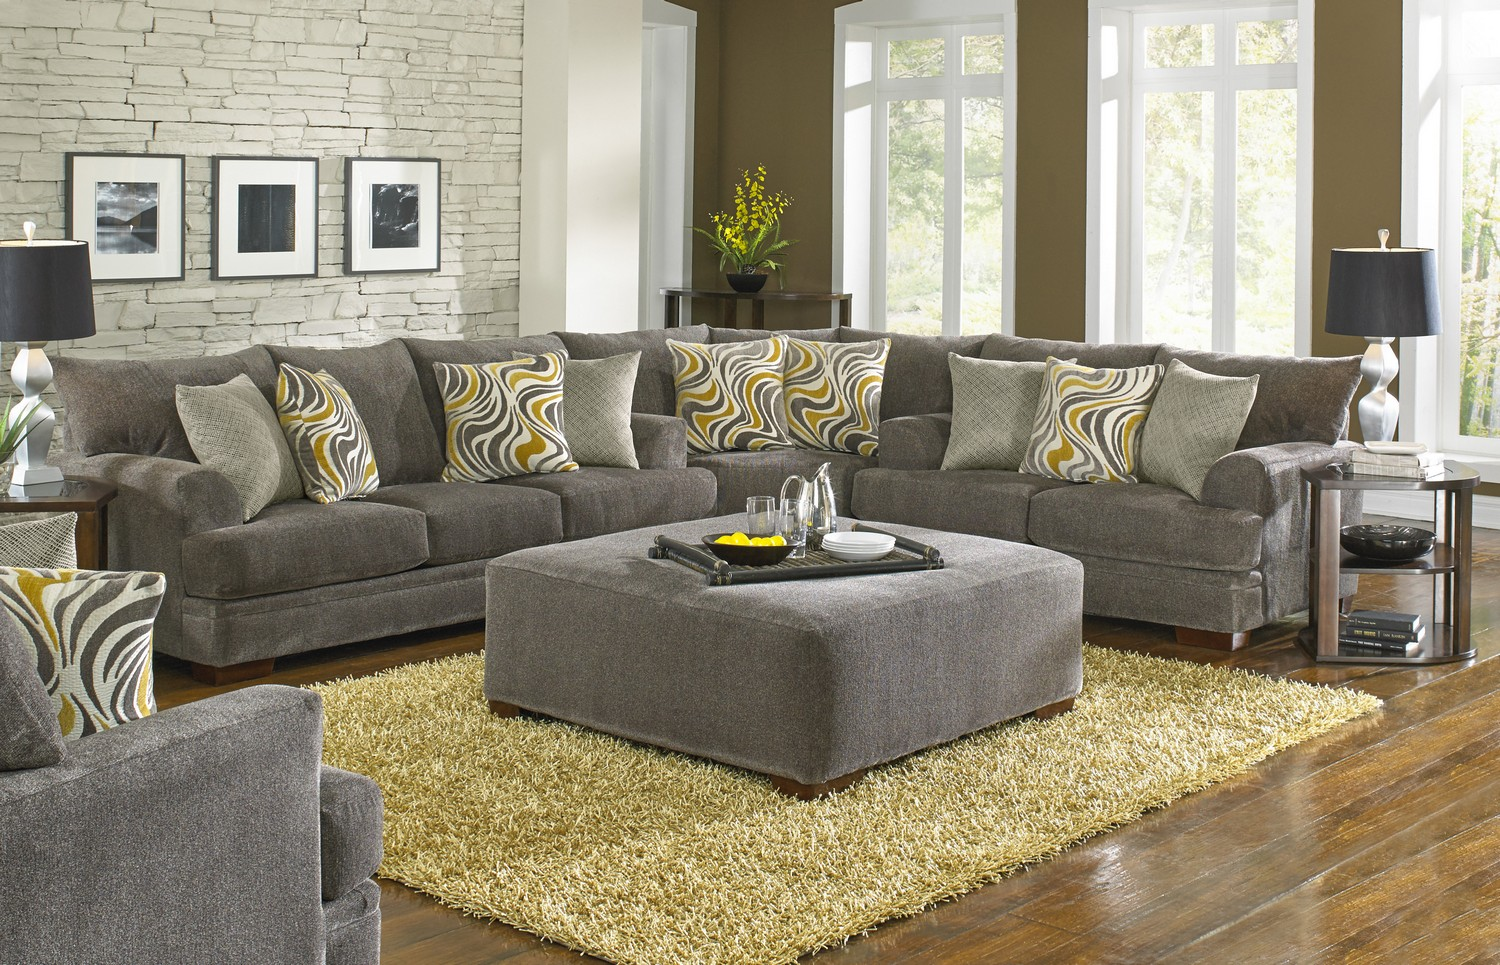 Jackson Crompton Sofa Sectional Sofa Set Pewter Jf 4462